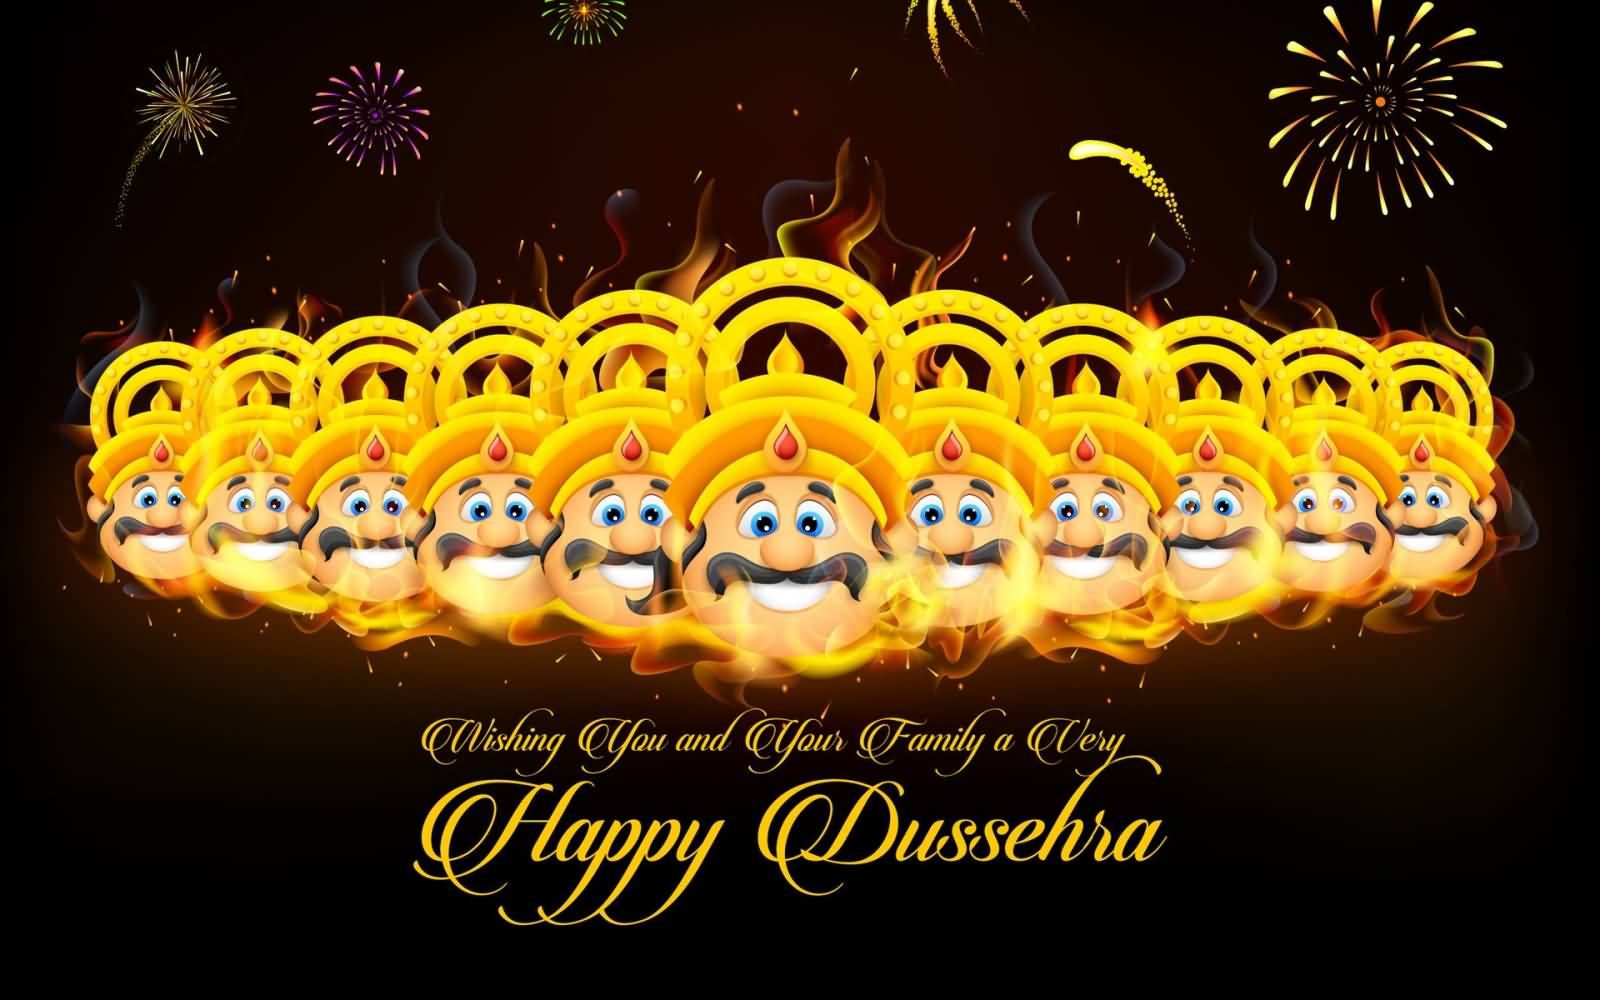 Wishing you and your family a very happy dussehra 2016 wallpaper happy dussehra ravan dahan vijay dashami 2015 wishes pics photos videos kristyandbryce Choice Image